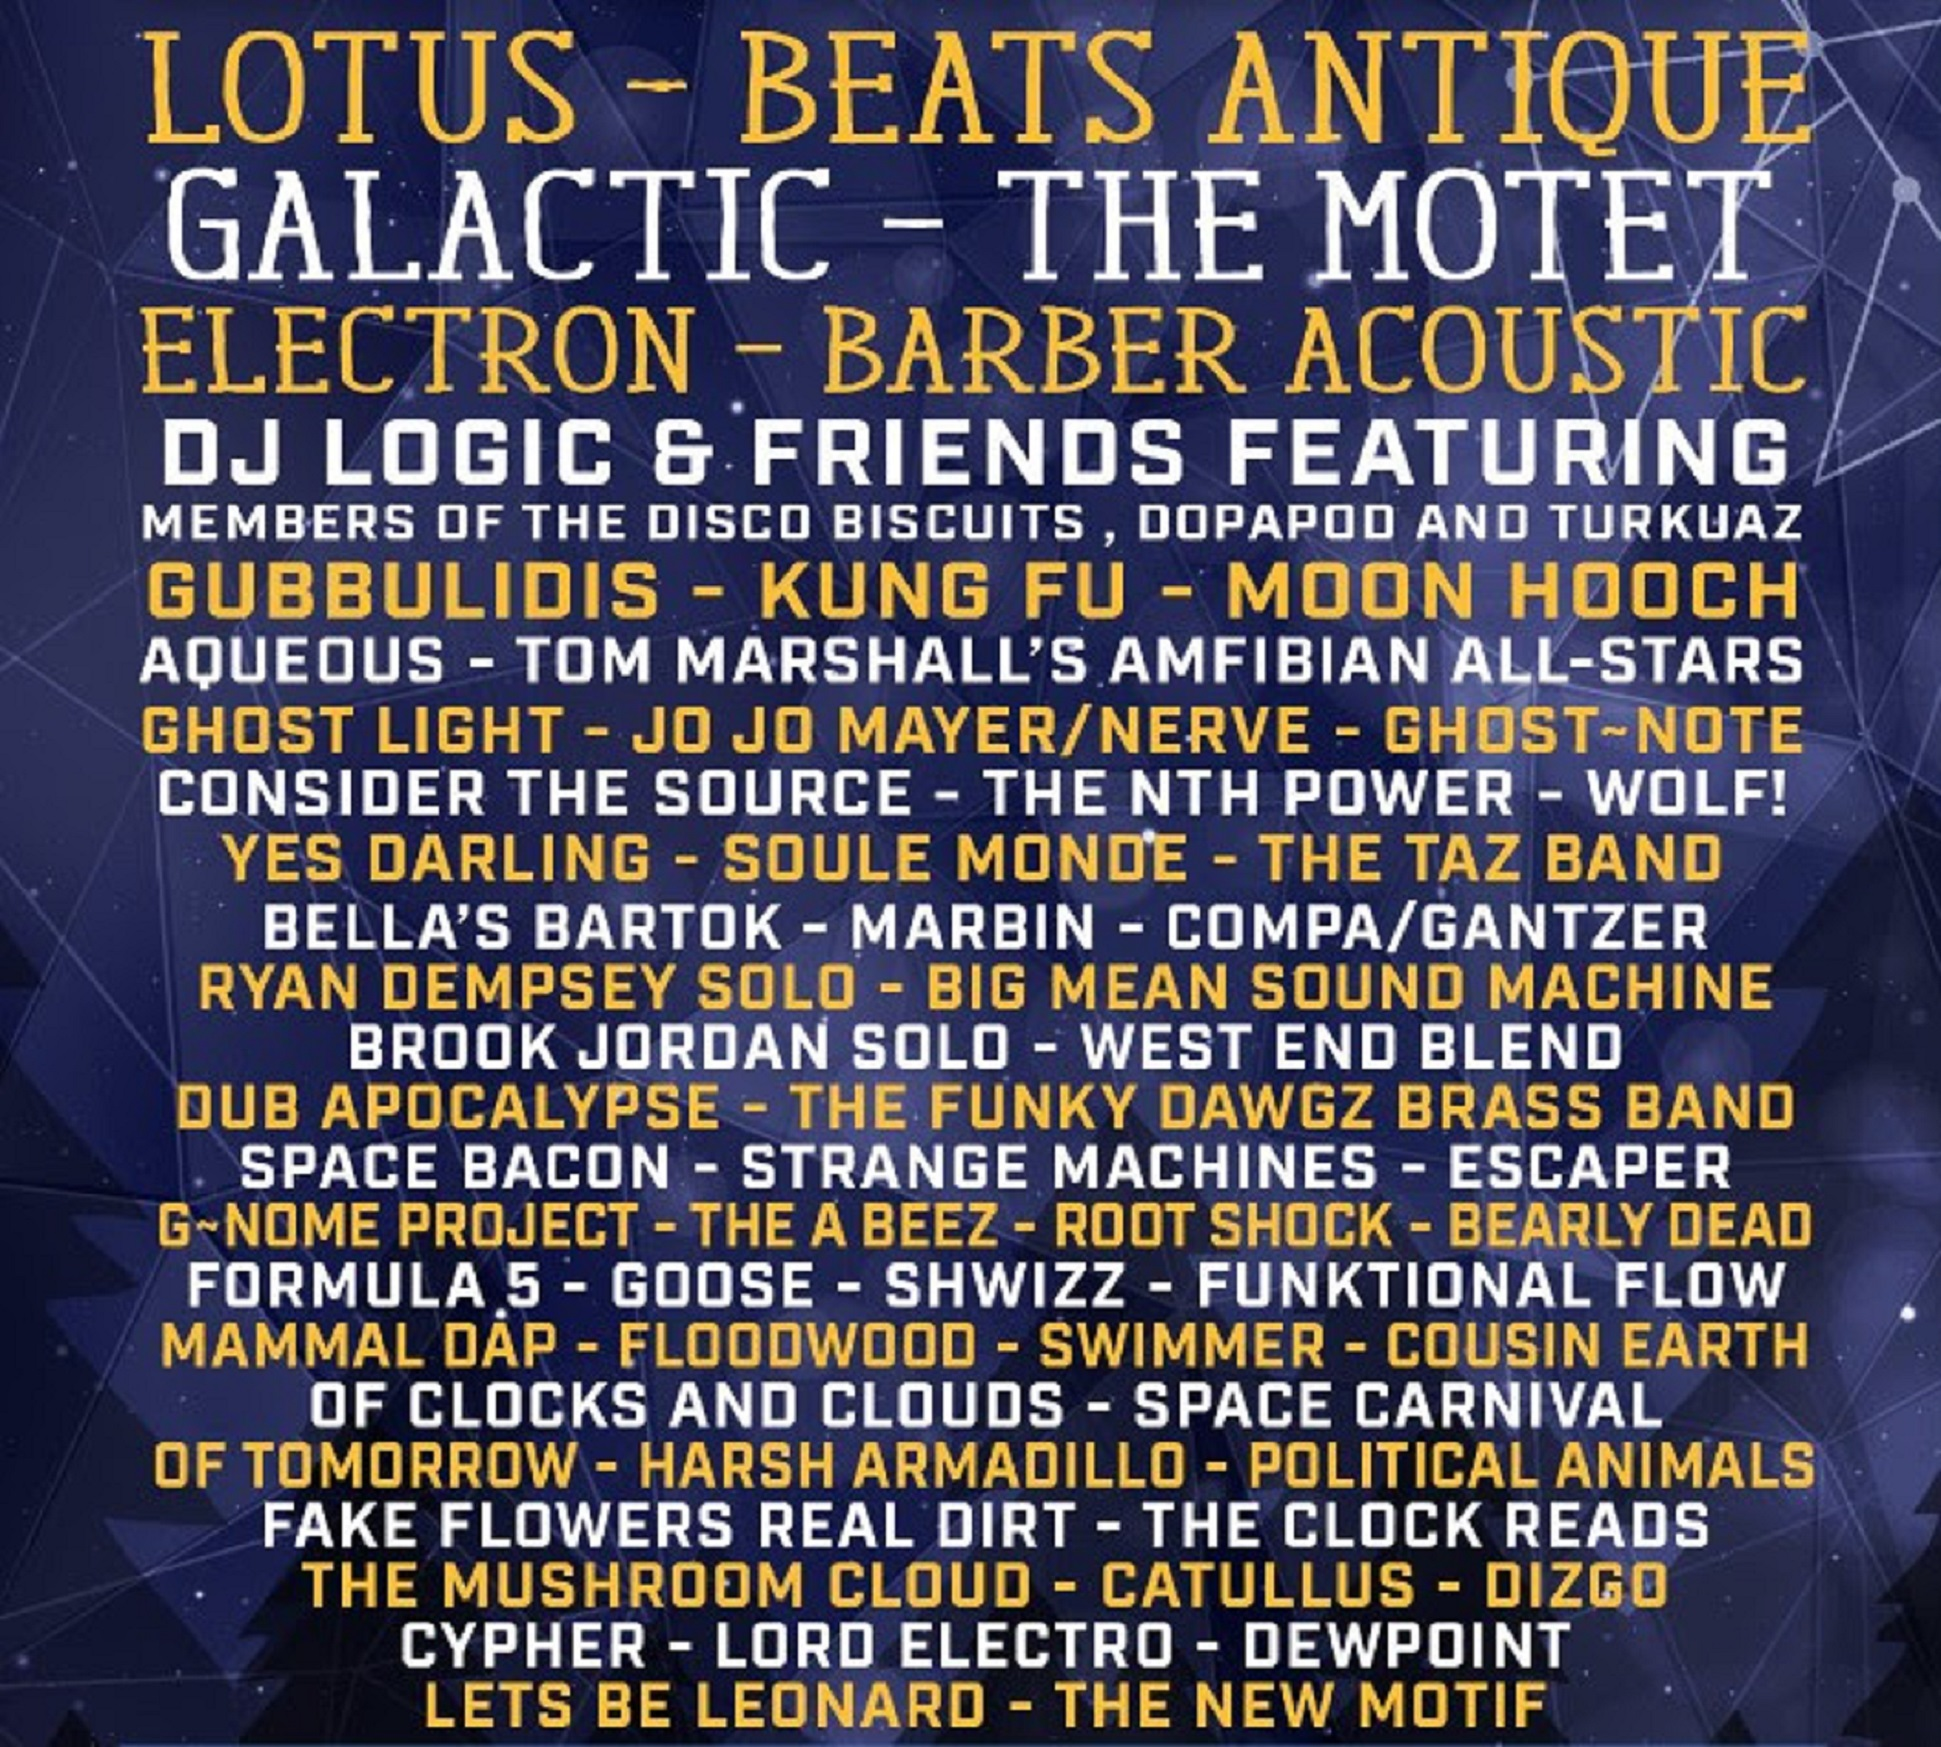 Disc Jam '18 Lotus Beats Antique Galactic Electron +100 more